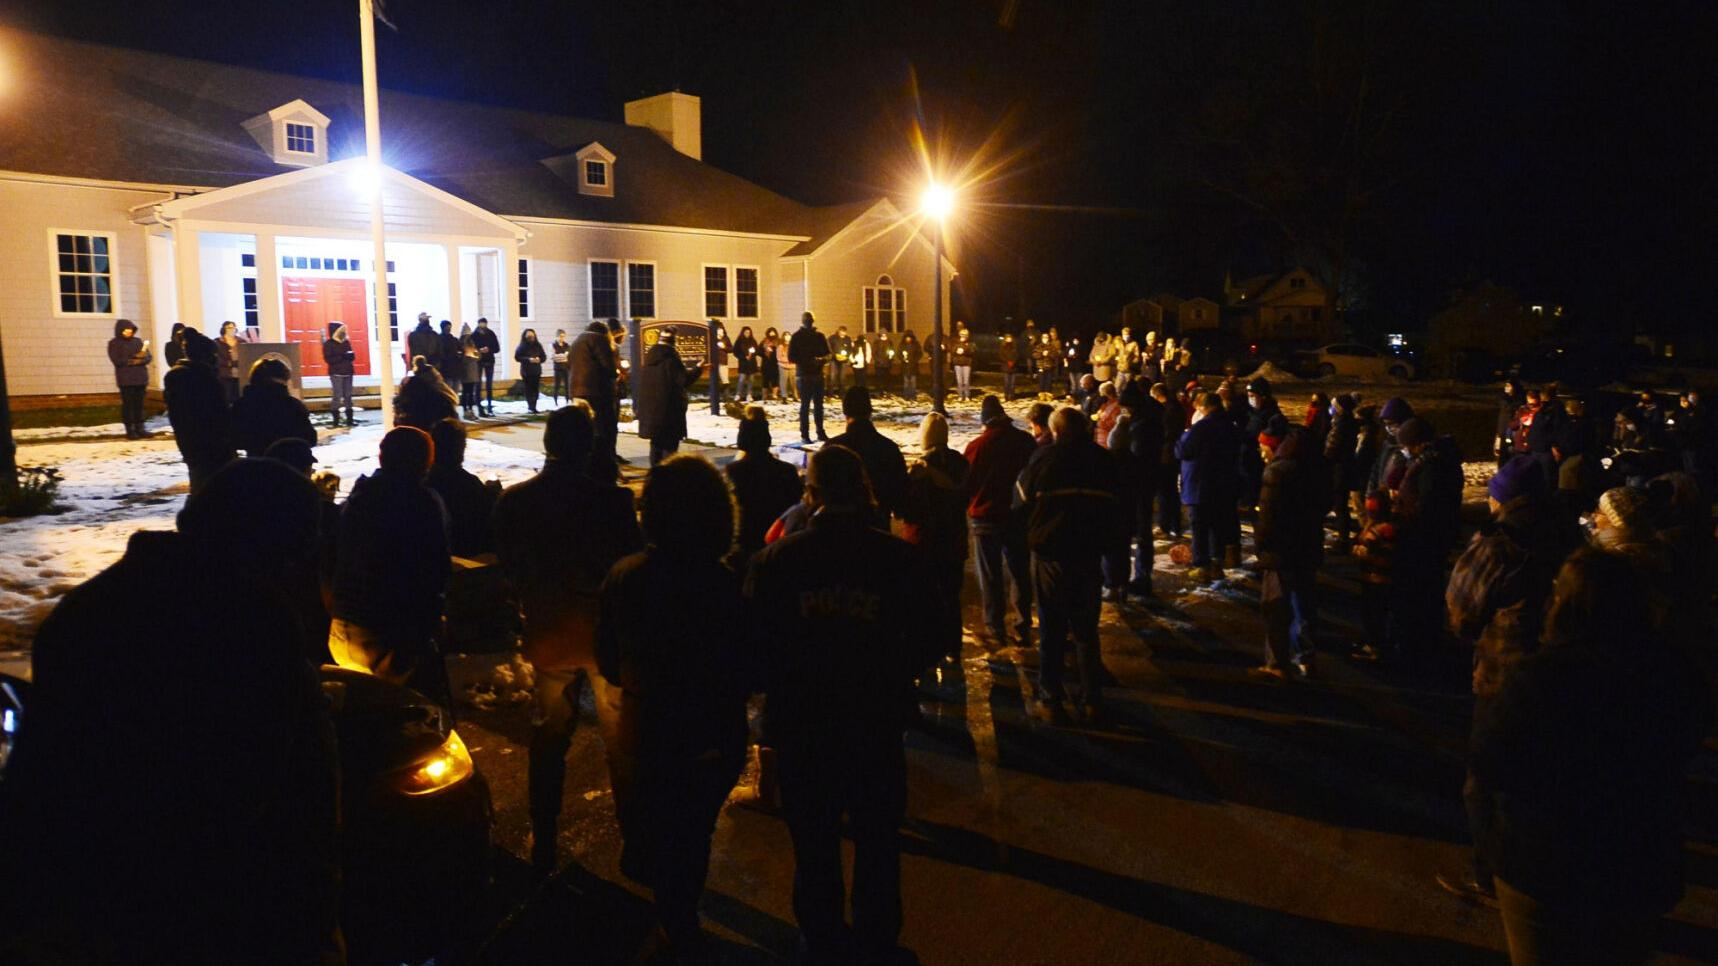 Hope and prayers: Vigil offers support for Warsaw man battling COVID-19